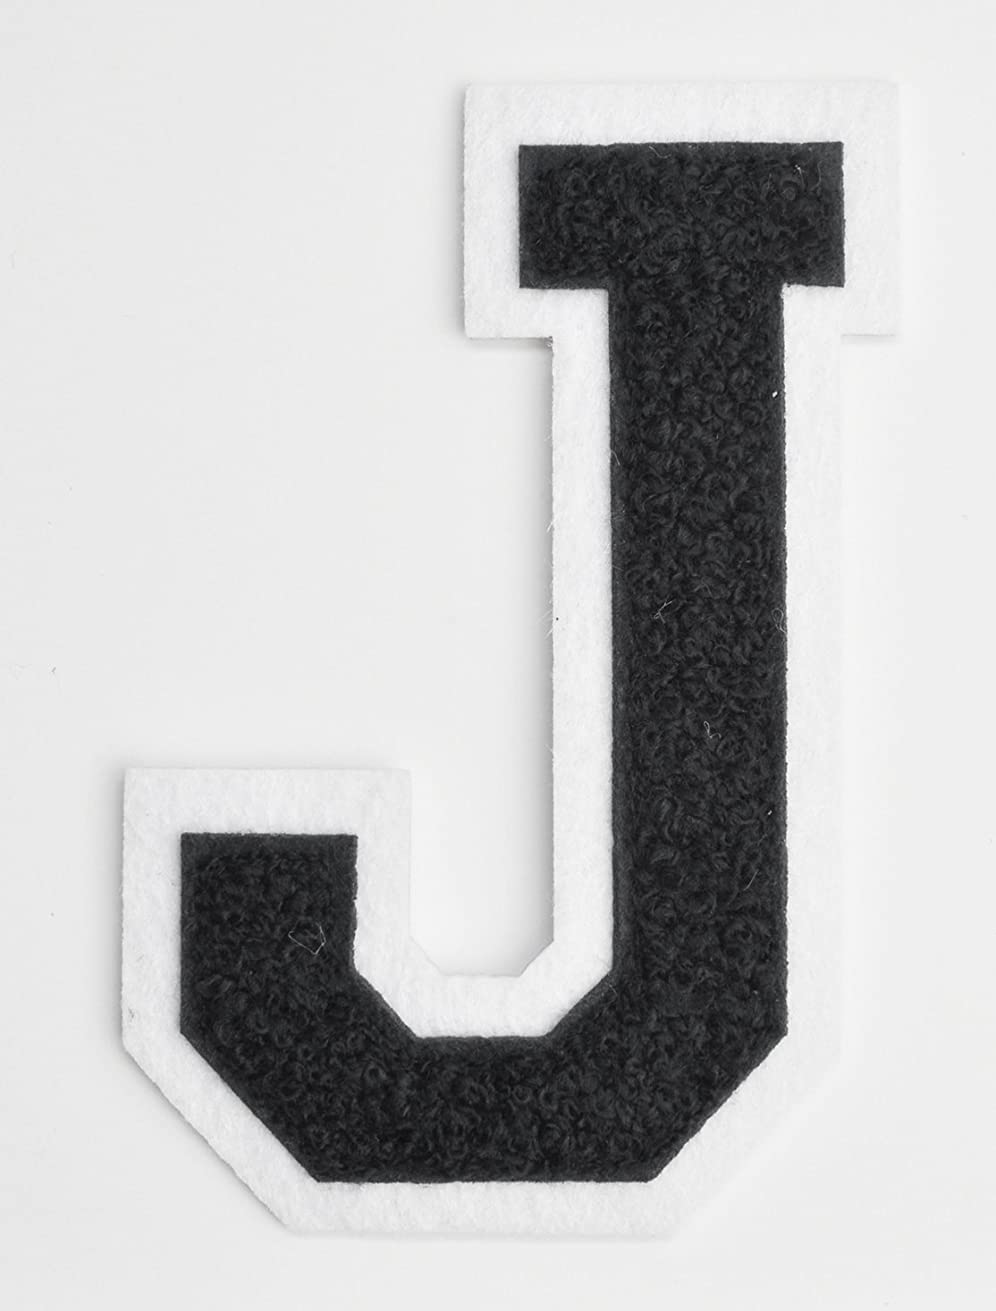 Varsity Letter Patches - Black Embroidered Chenille Letterman Patch - 4 1/2 inch Iron-On Letter Initials (Black, Letter J Patch)